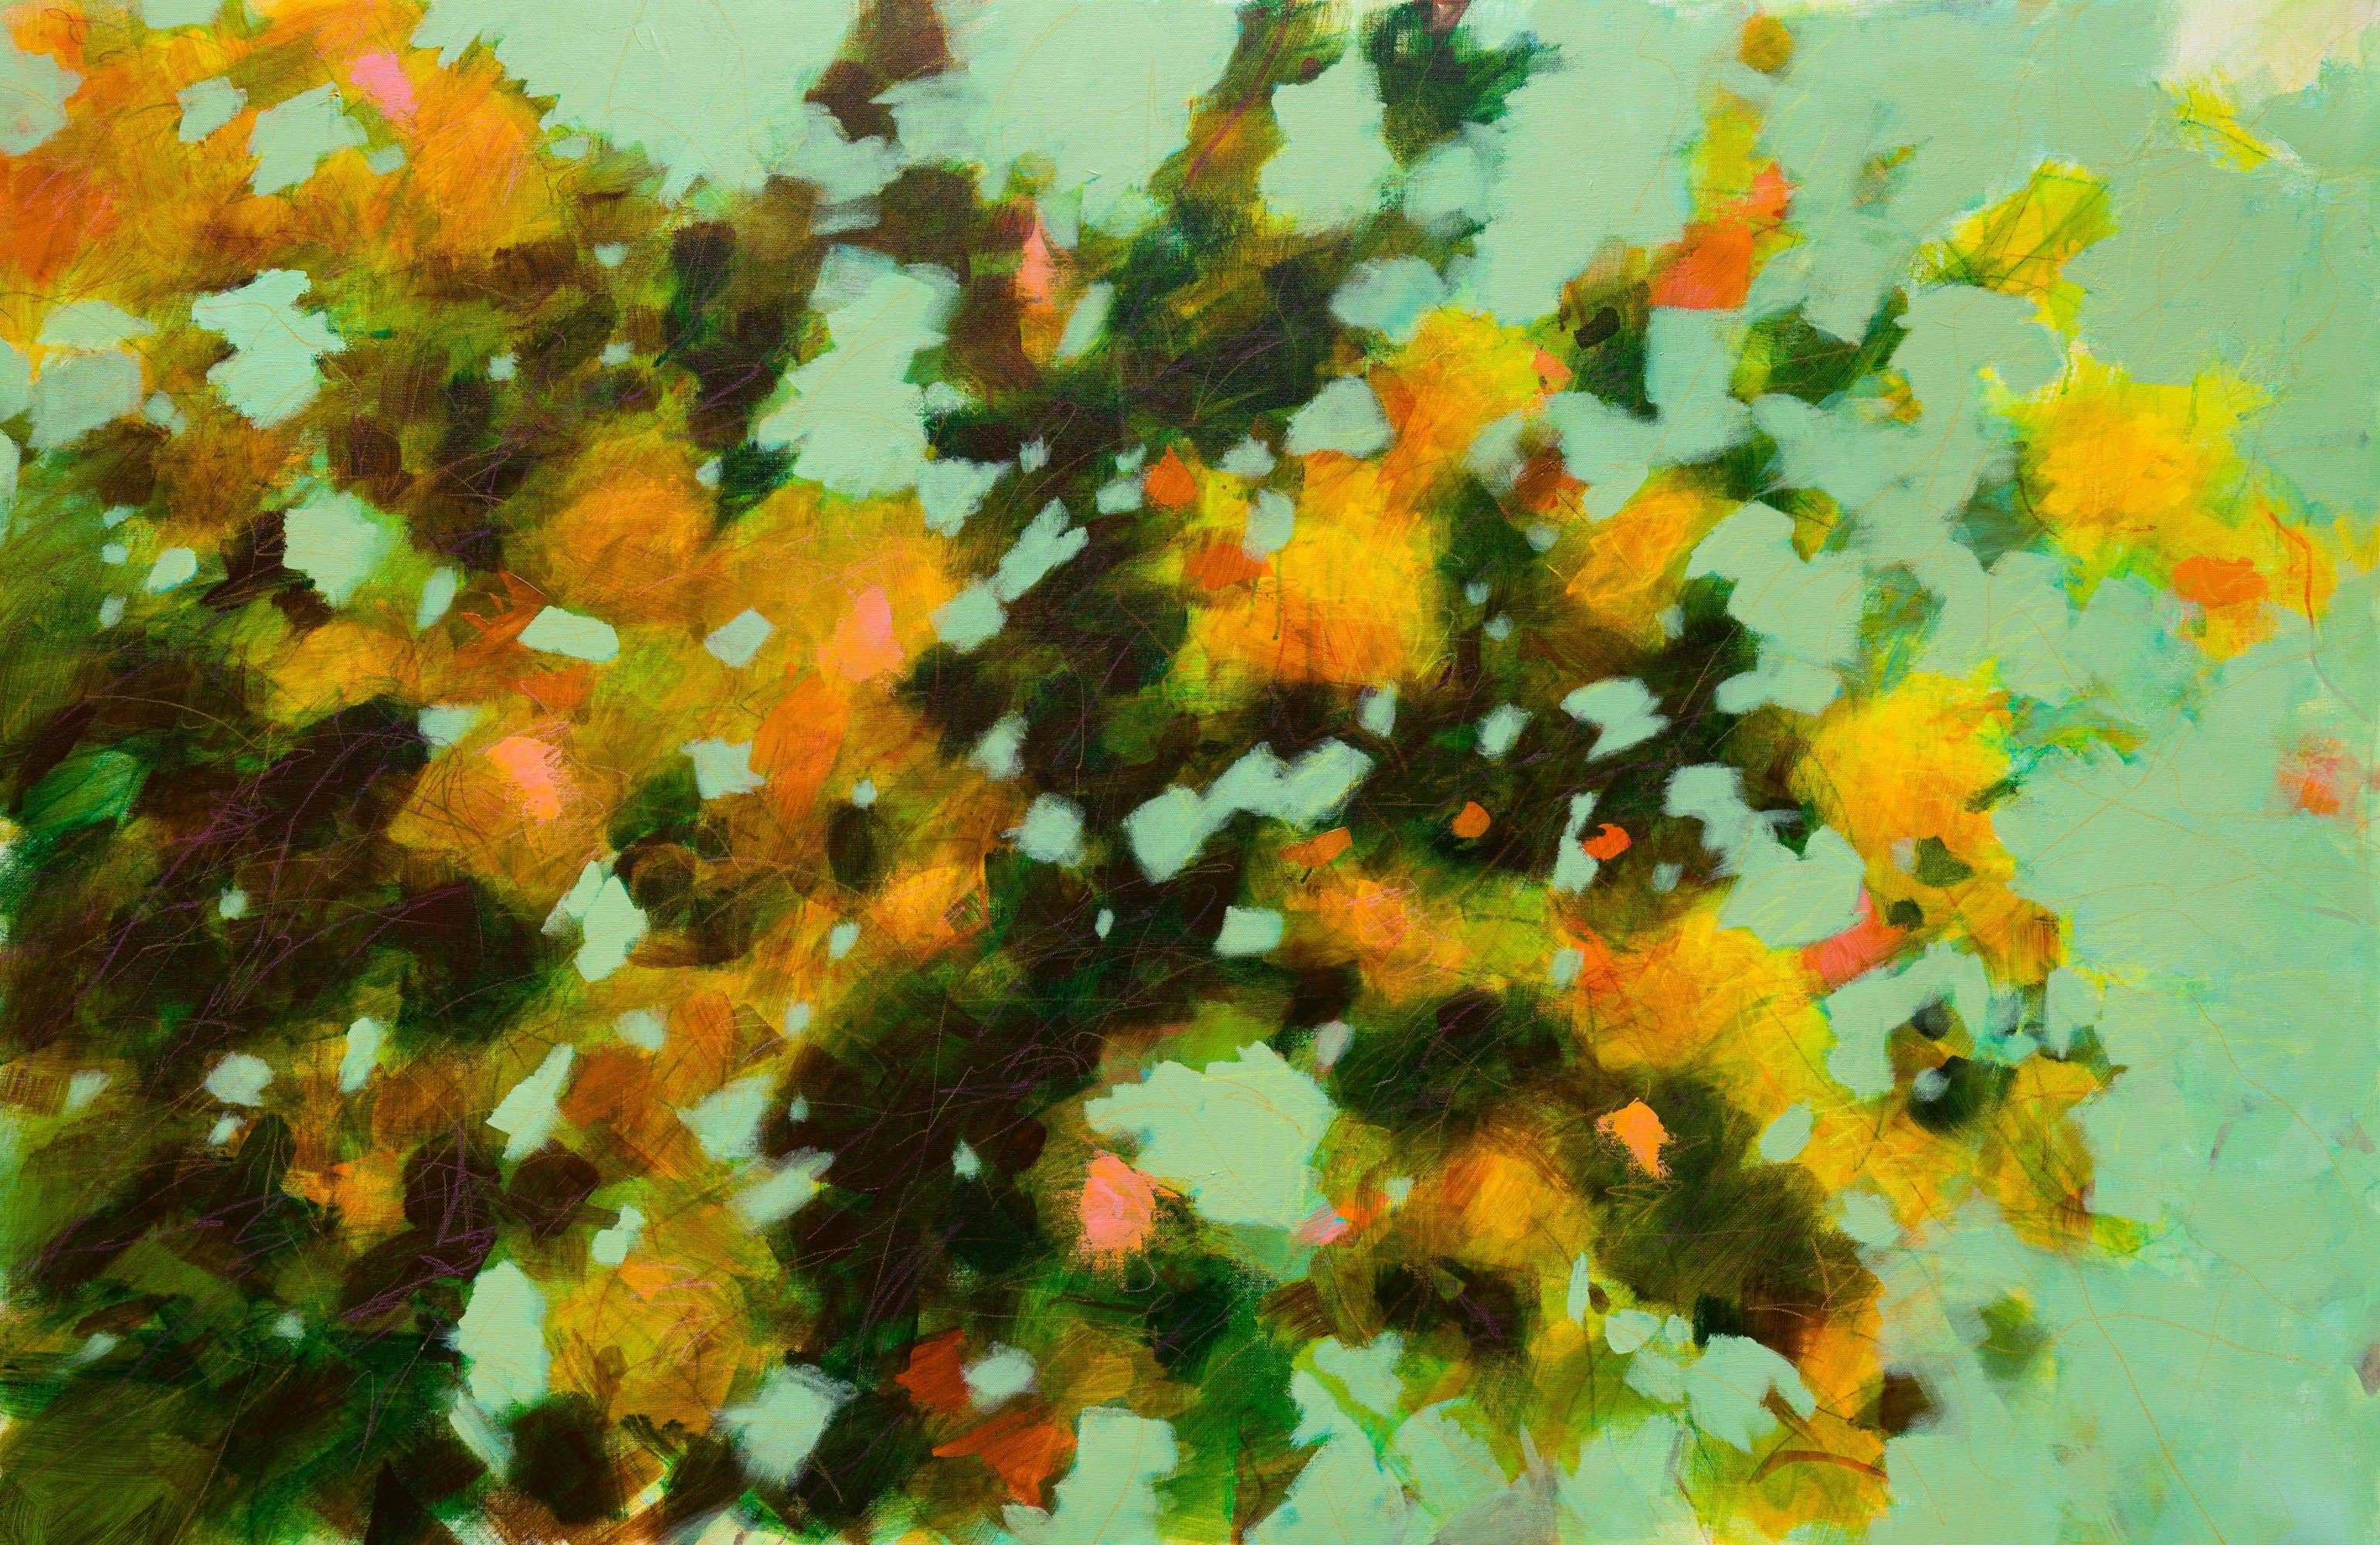 Fabienne Monestier Flowering Branches In Orange And Green Painting Acrylic On Canvas For Sale At 1stdibs